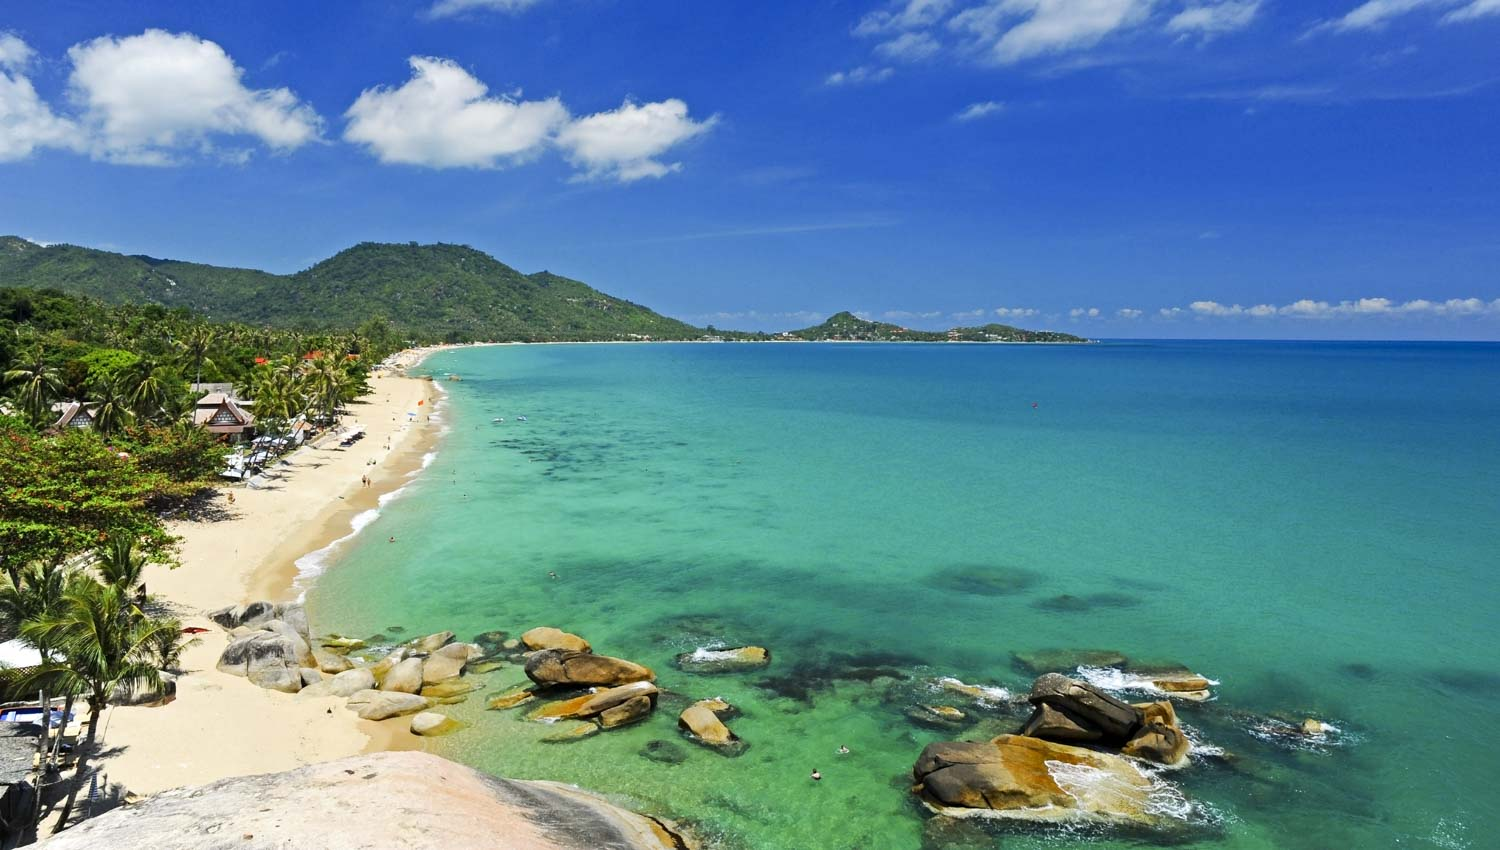 Koh Samui 2019: Top 10 Tours & Activities (with Photos) - Things to Do in Koh Samui, Thailand ...